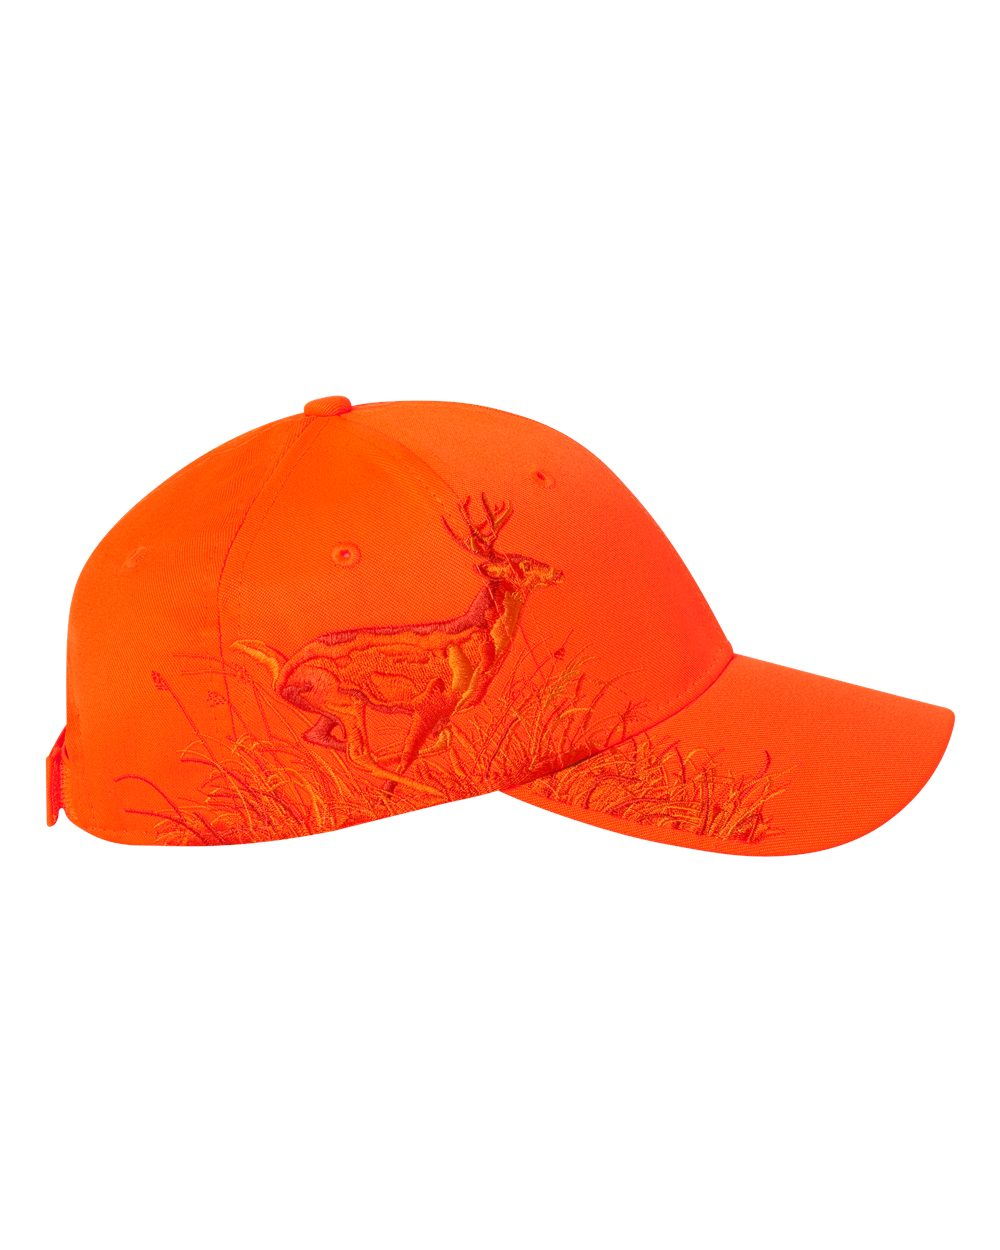 DRI DUCK 3301 - Wildlife Buck Cap